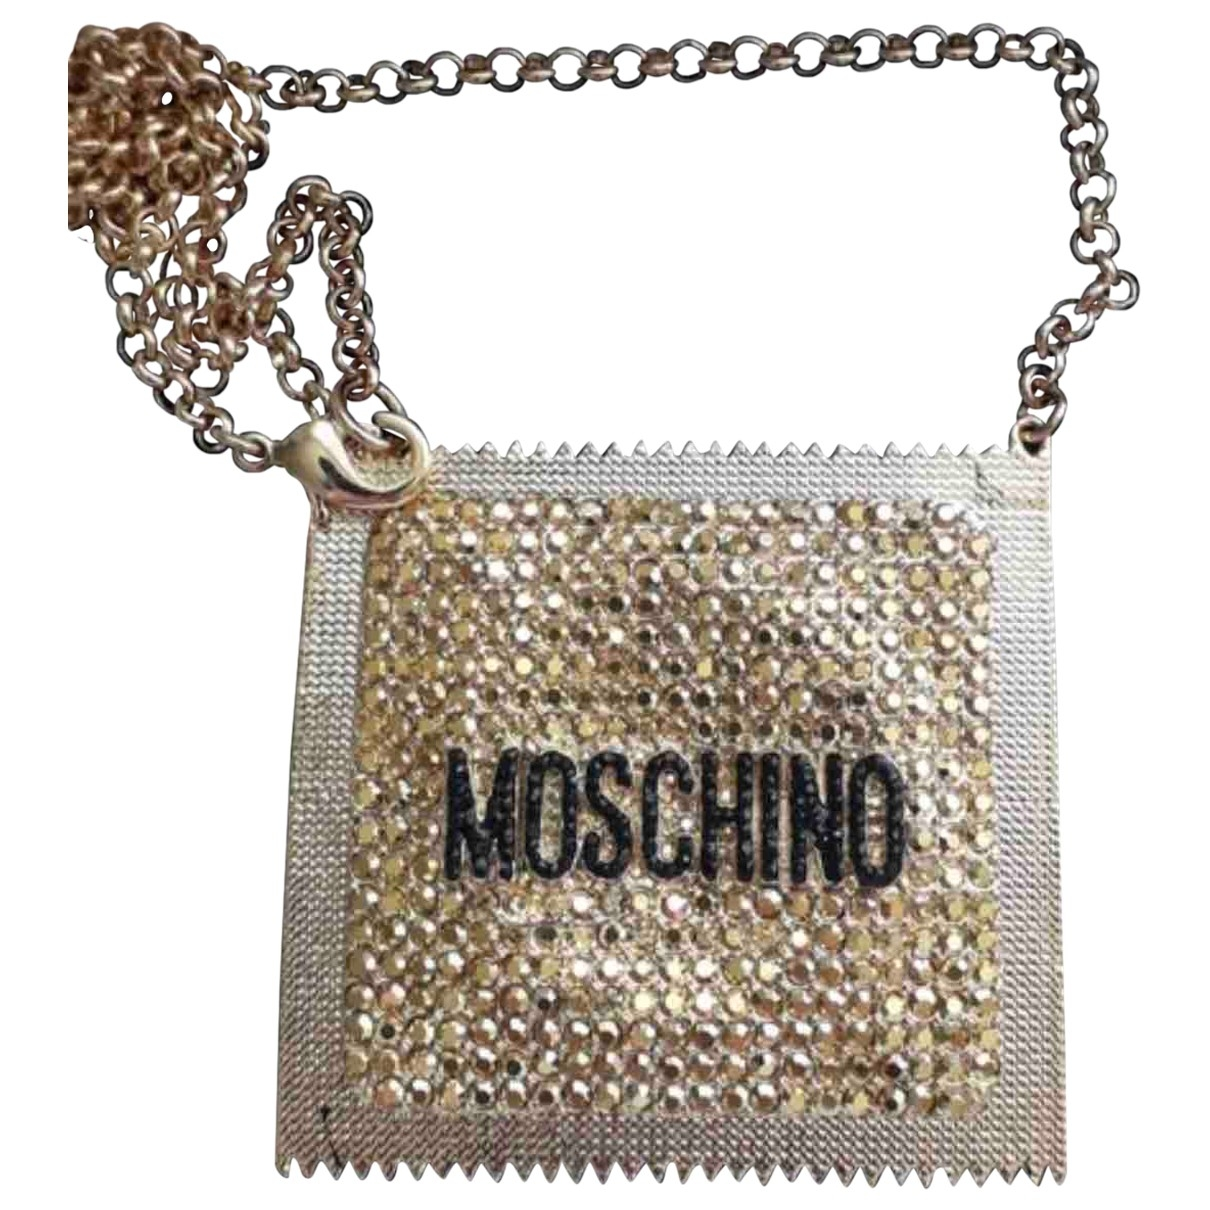 Joya Moschino For H&m